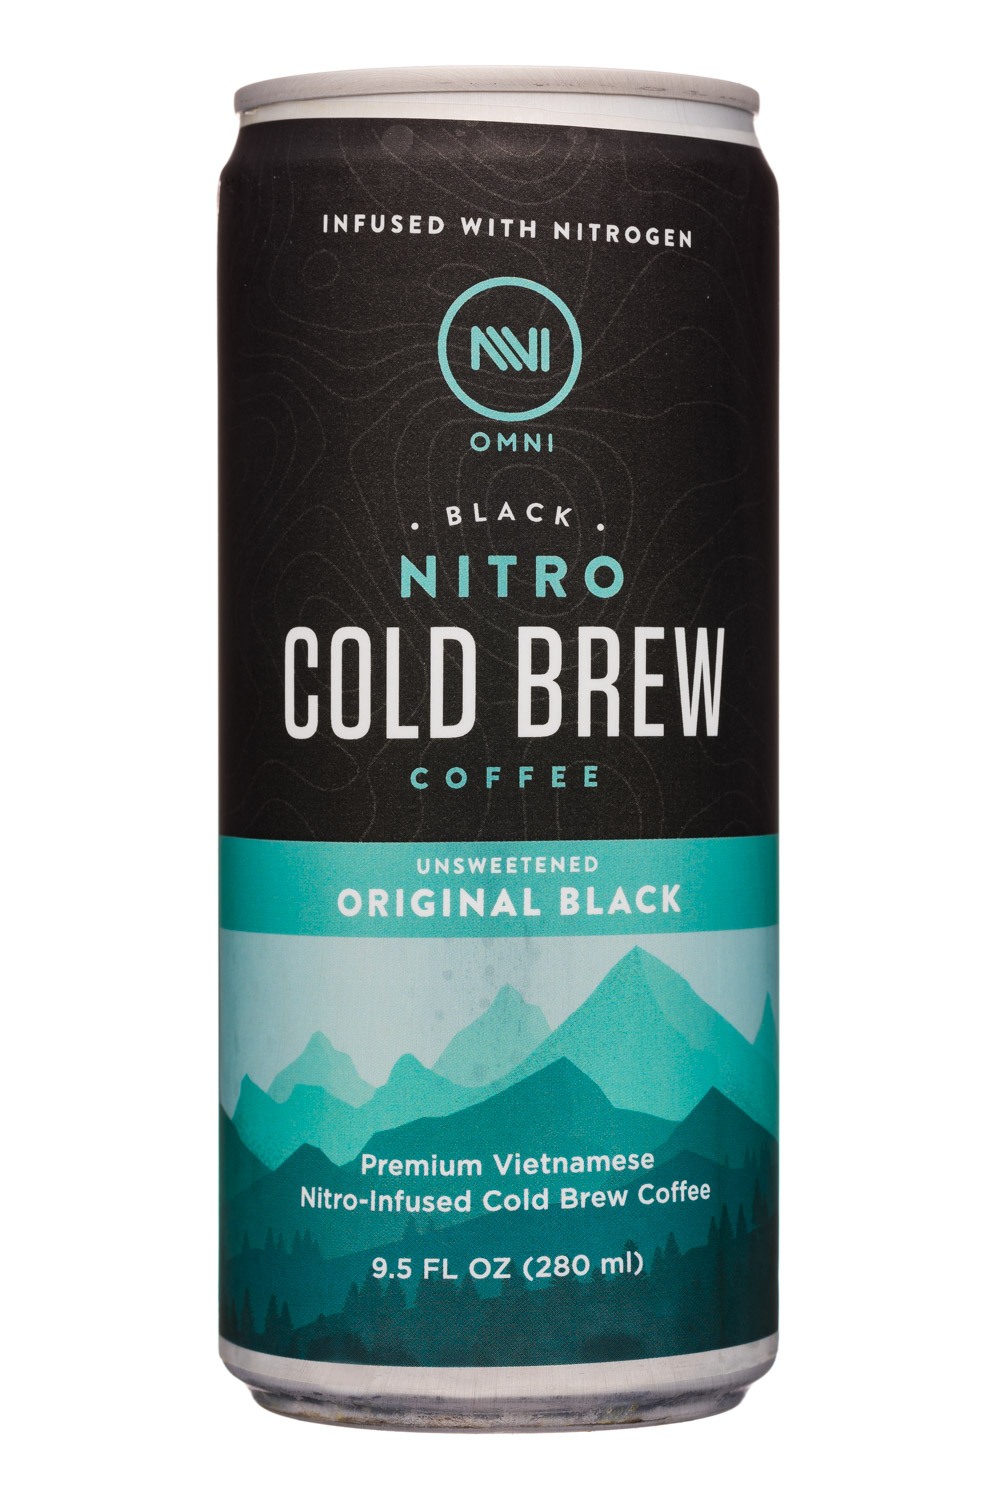 Unsweetened Original Black